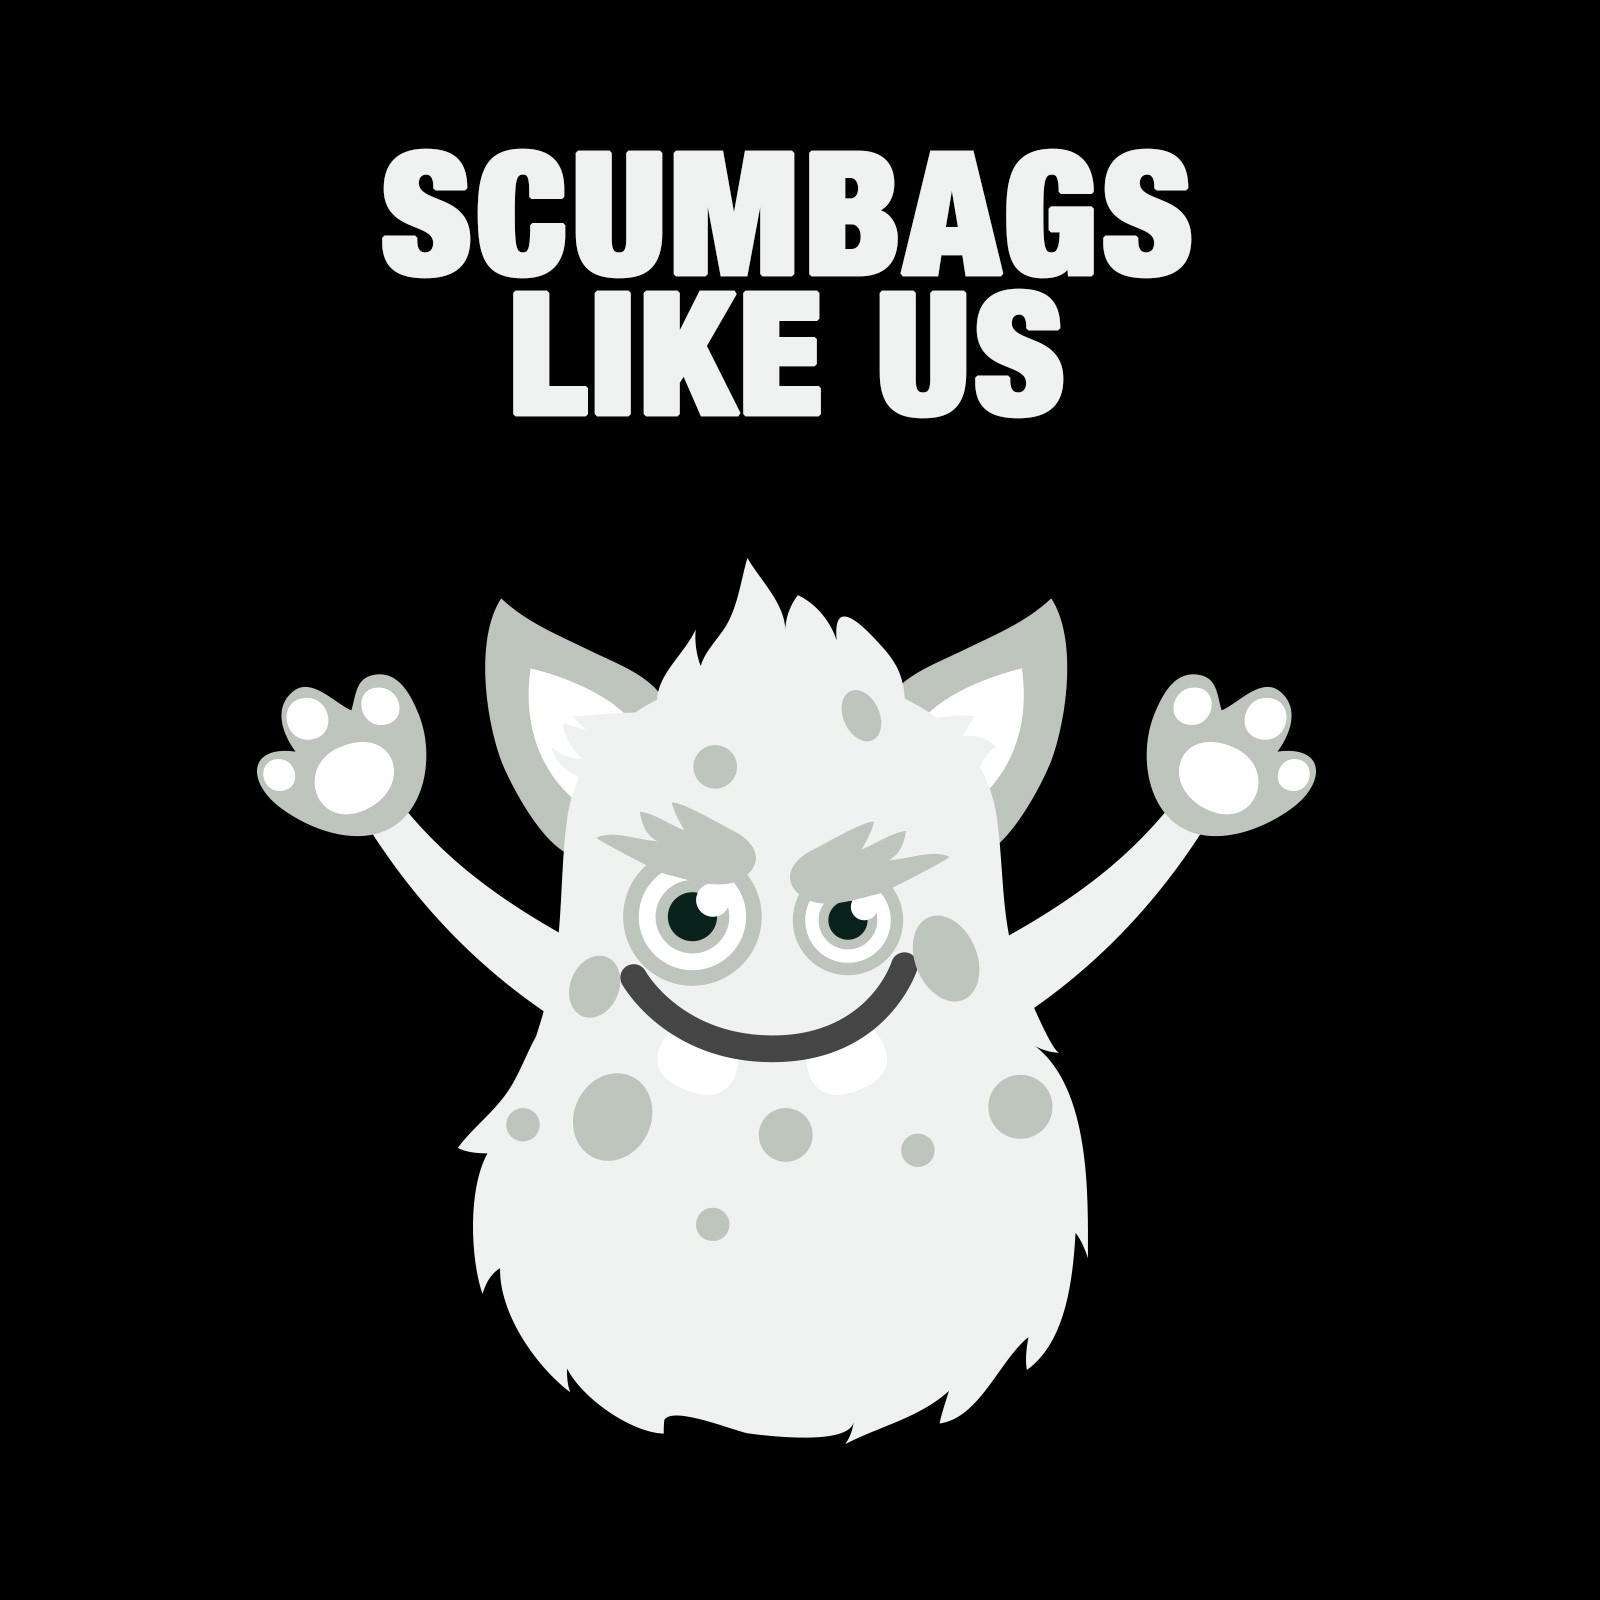 Scumbags Like Us | Listen via Stitcher for Podcasts